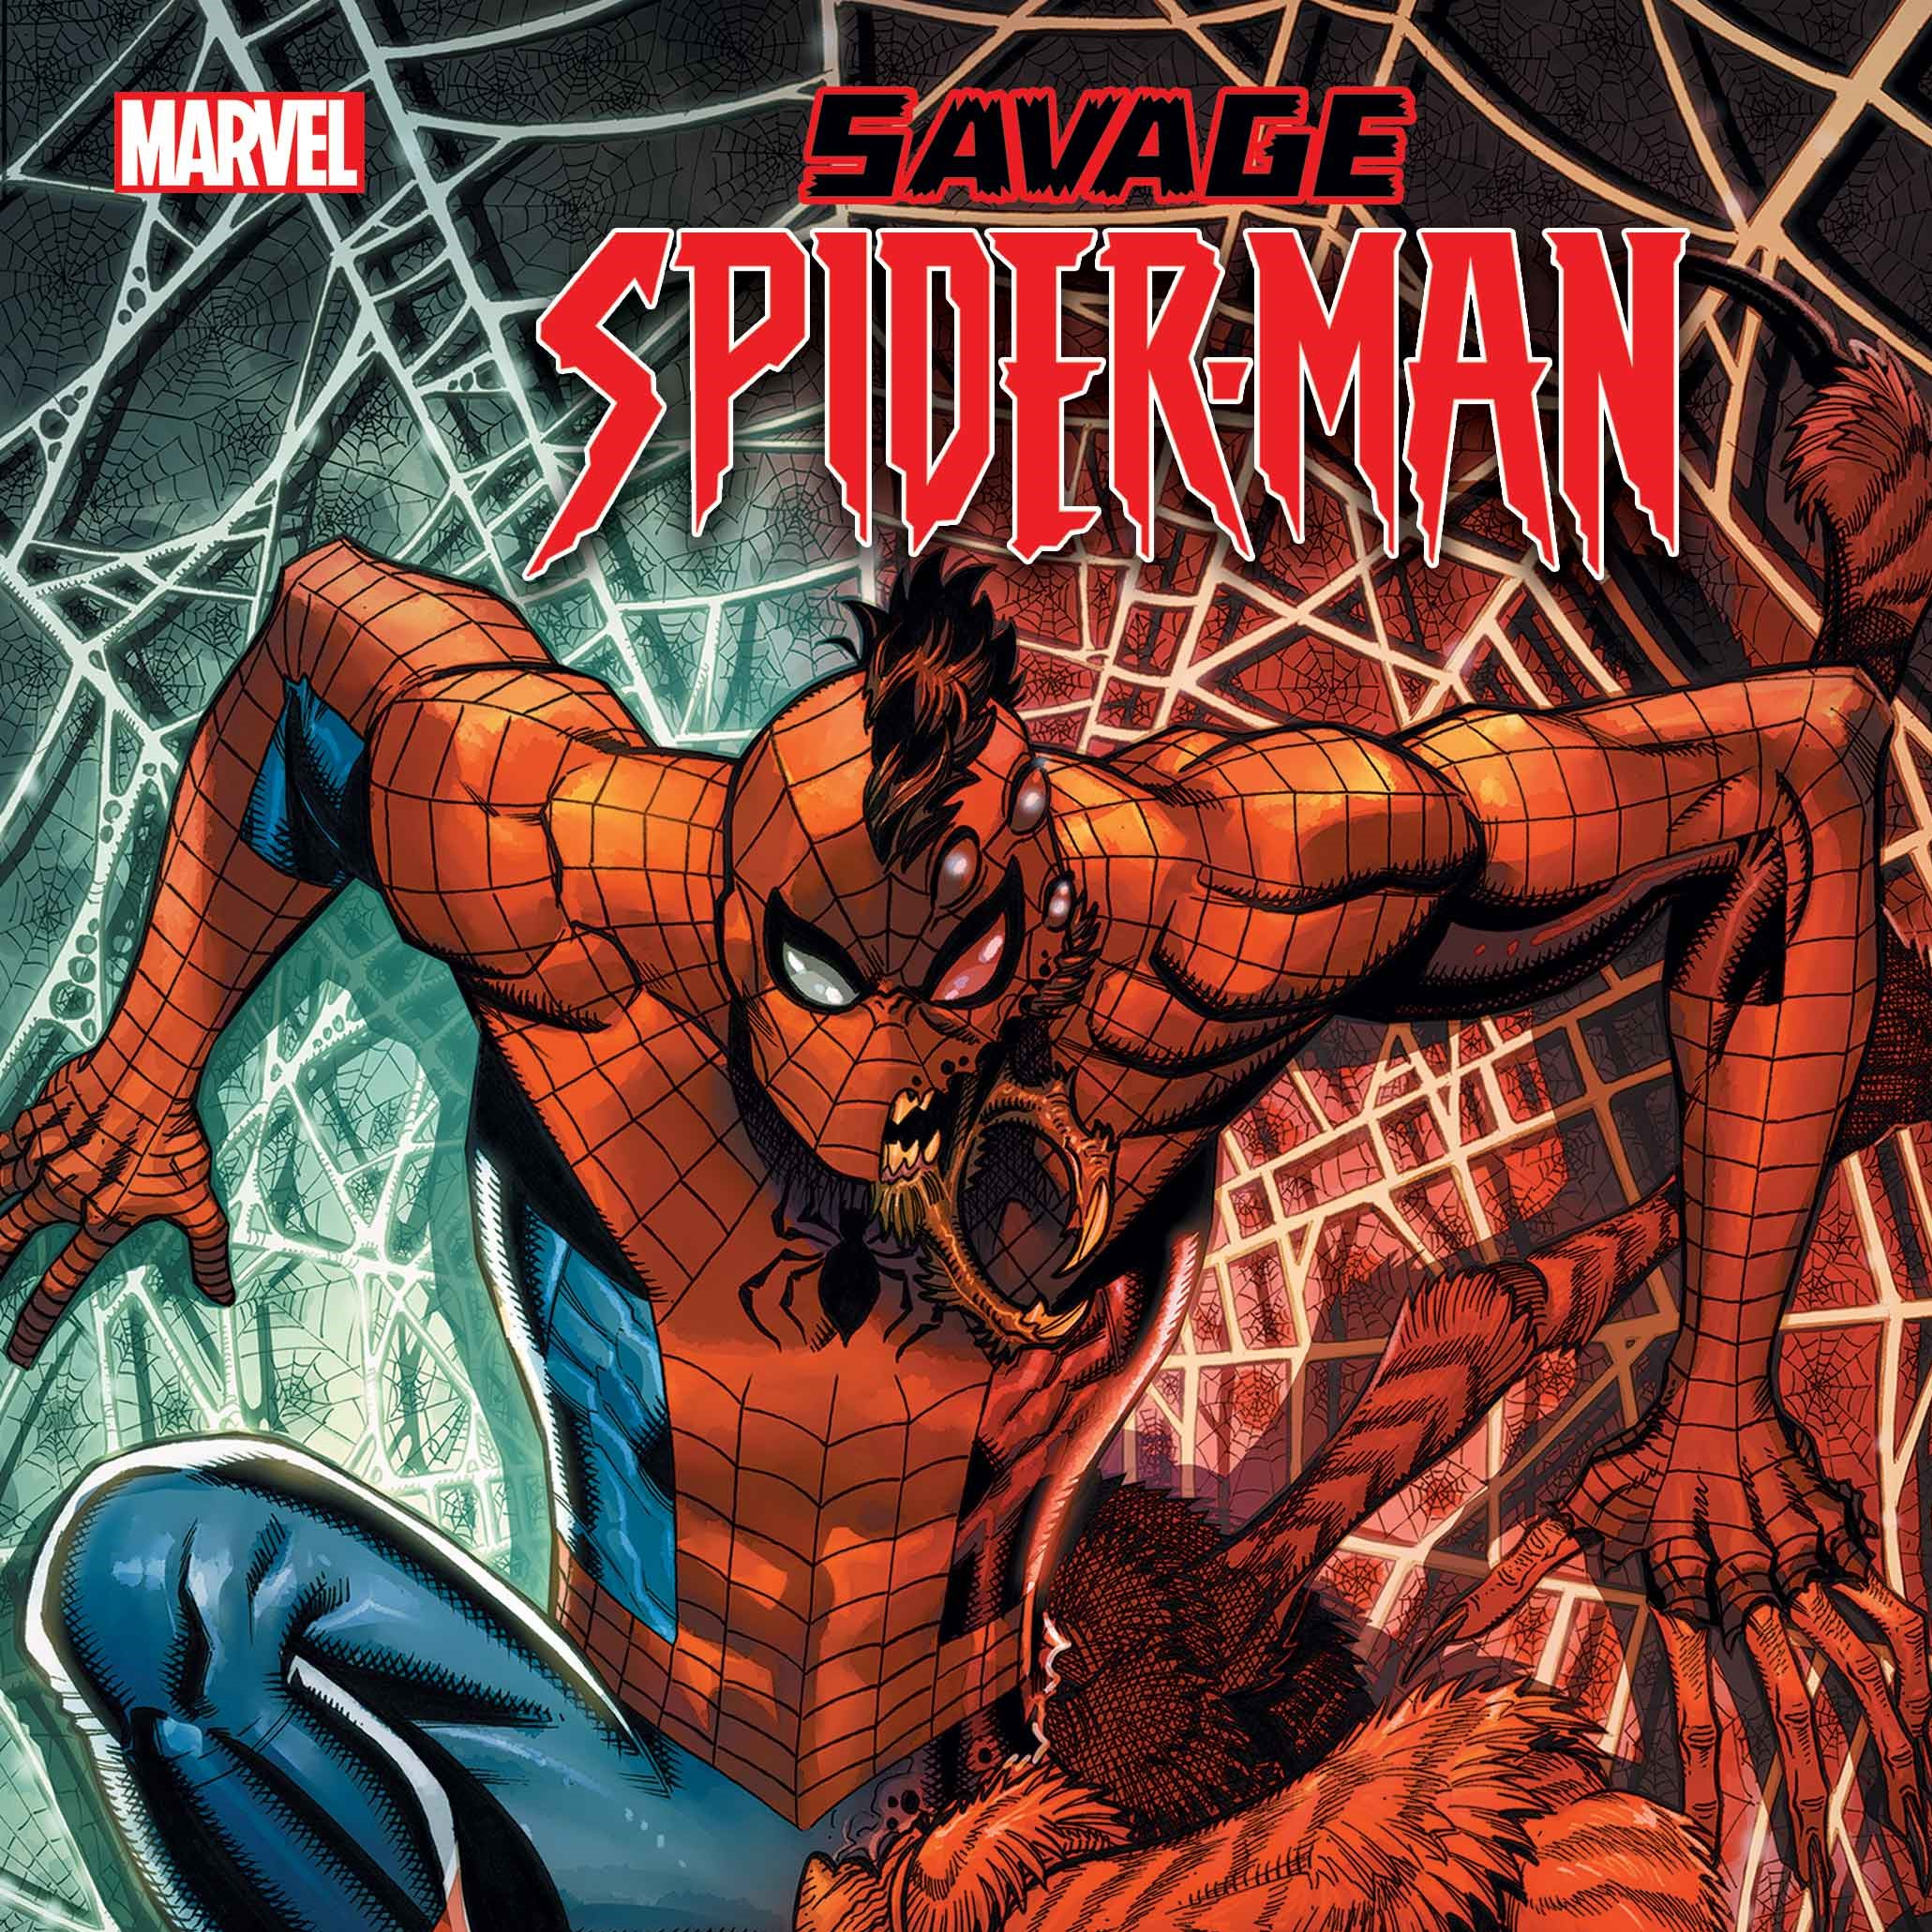 Savage Spider-Man via Nick Bradshaw for Marvel Entertainment for use by 360 Magazine